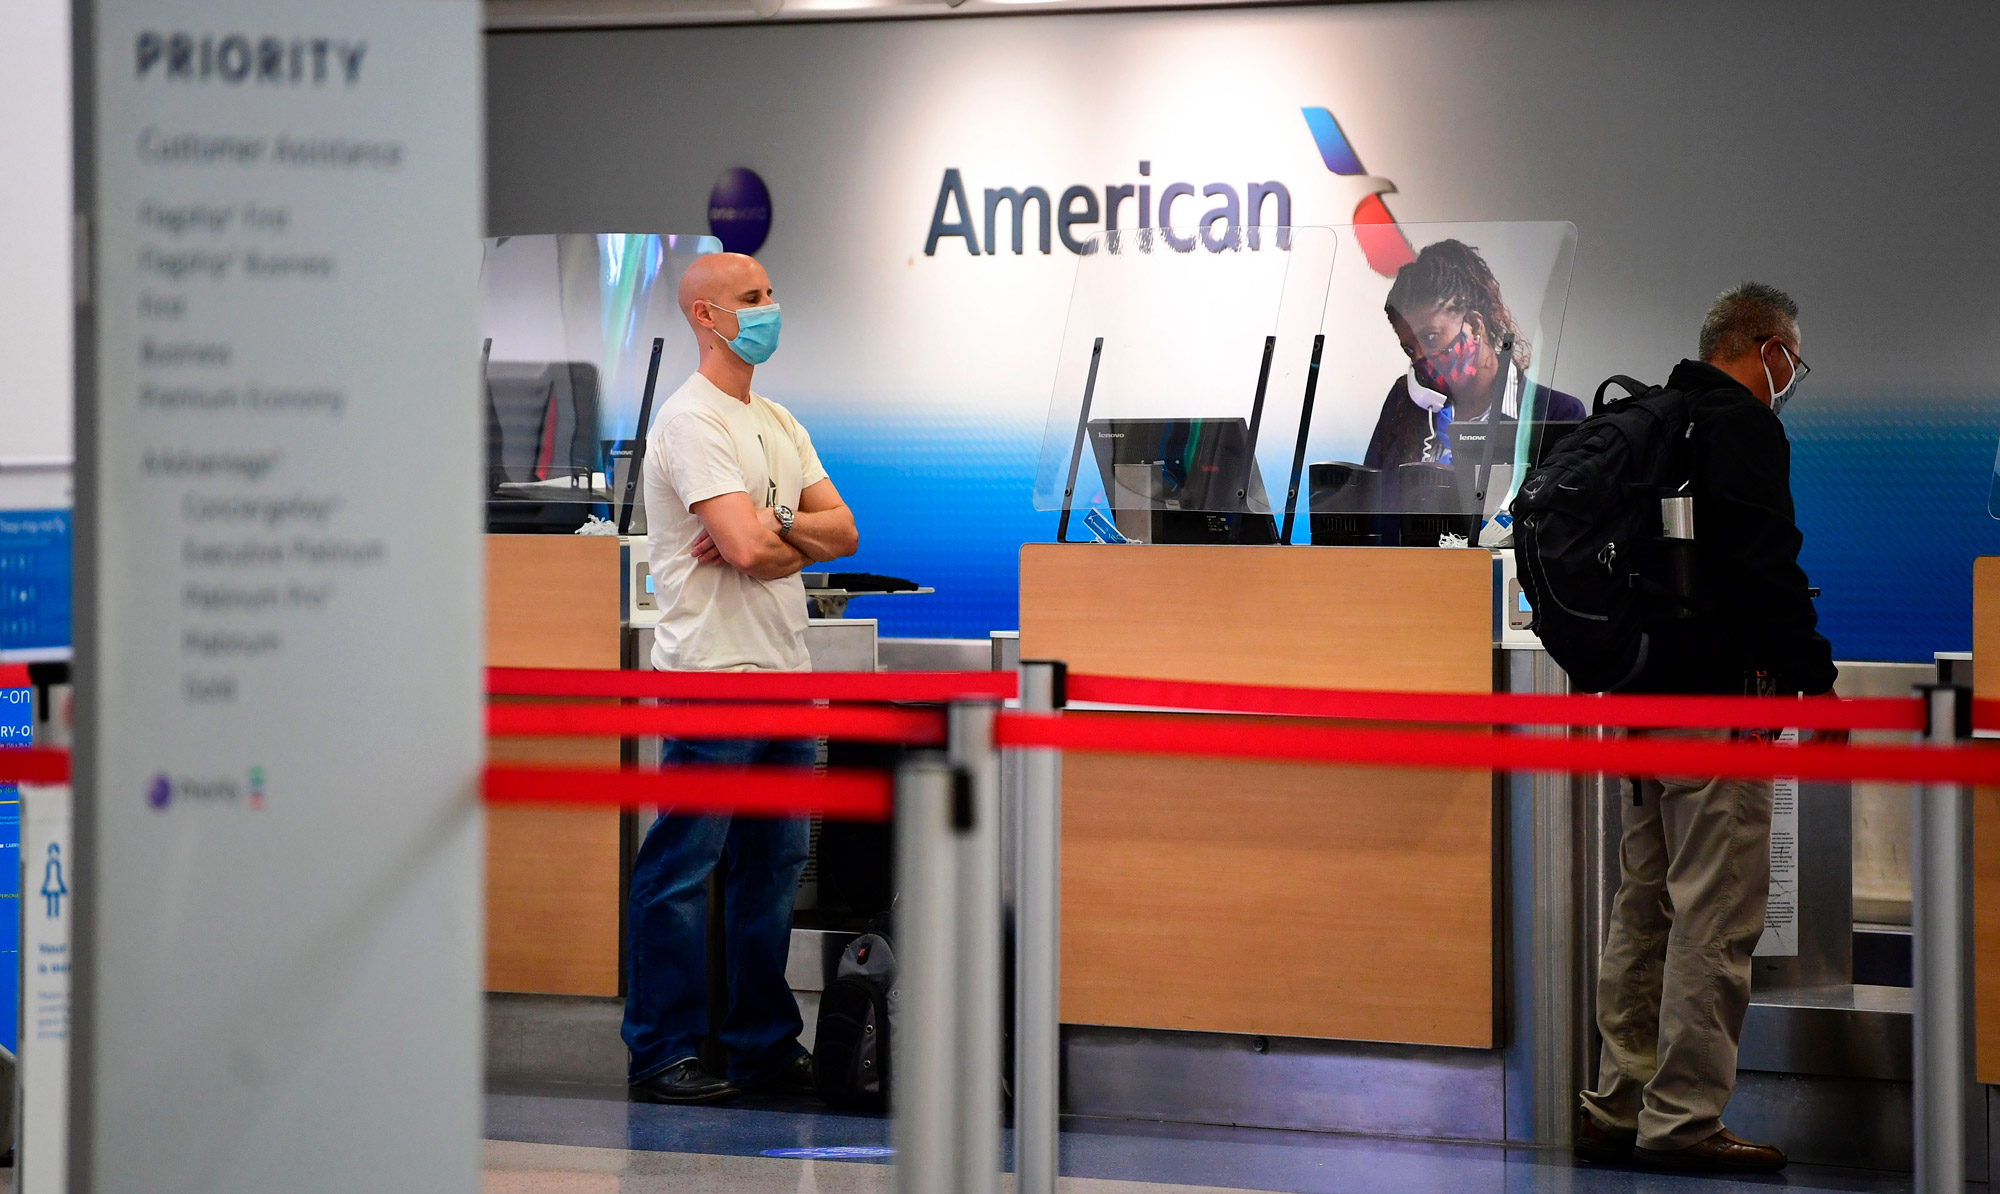 Travelers are seen at the American Airlines check-in counter at Los Angeles International Airport in Los Angeles on October 1, 2020.